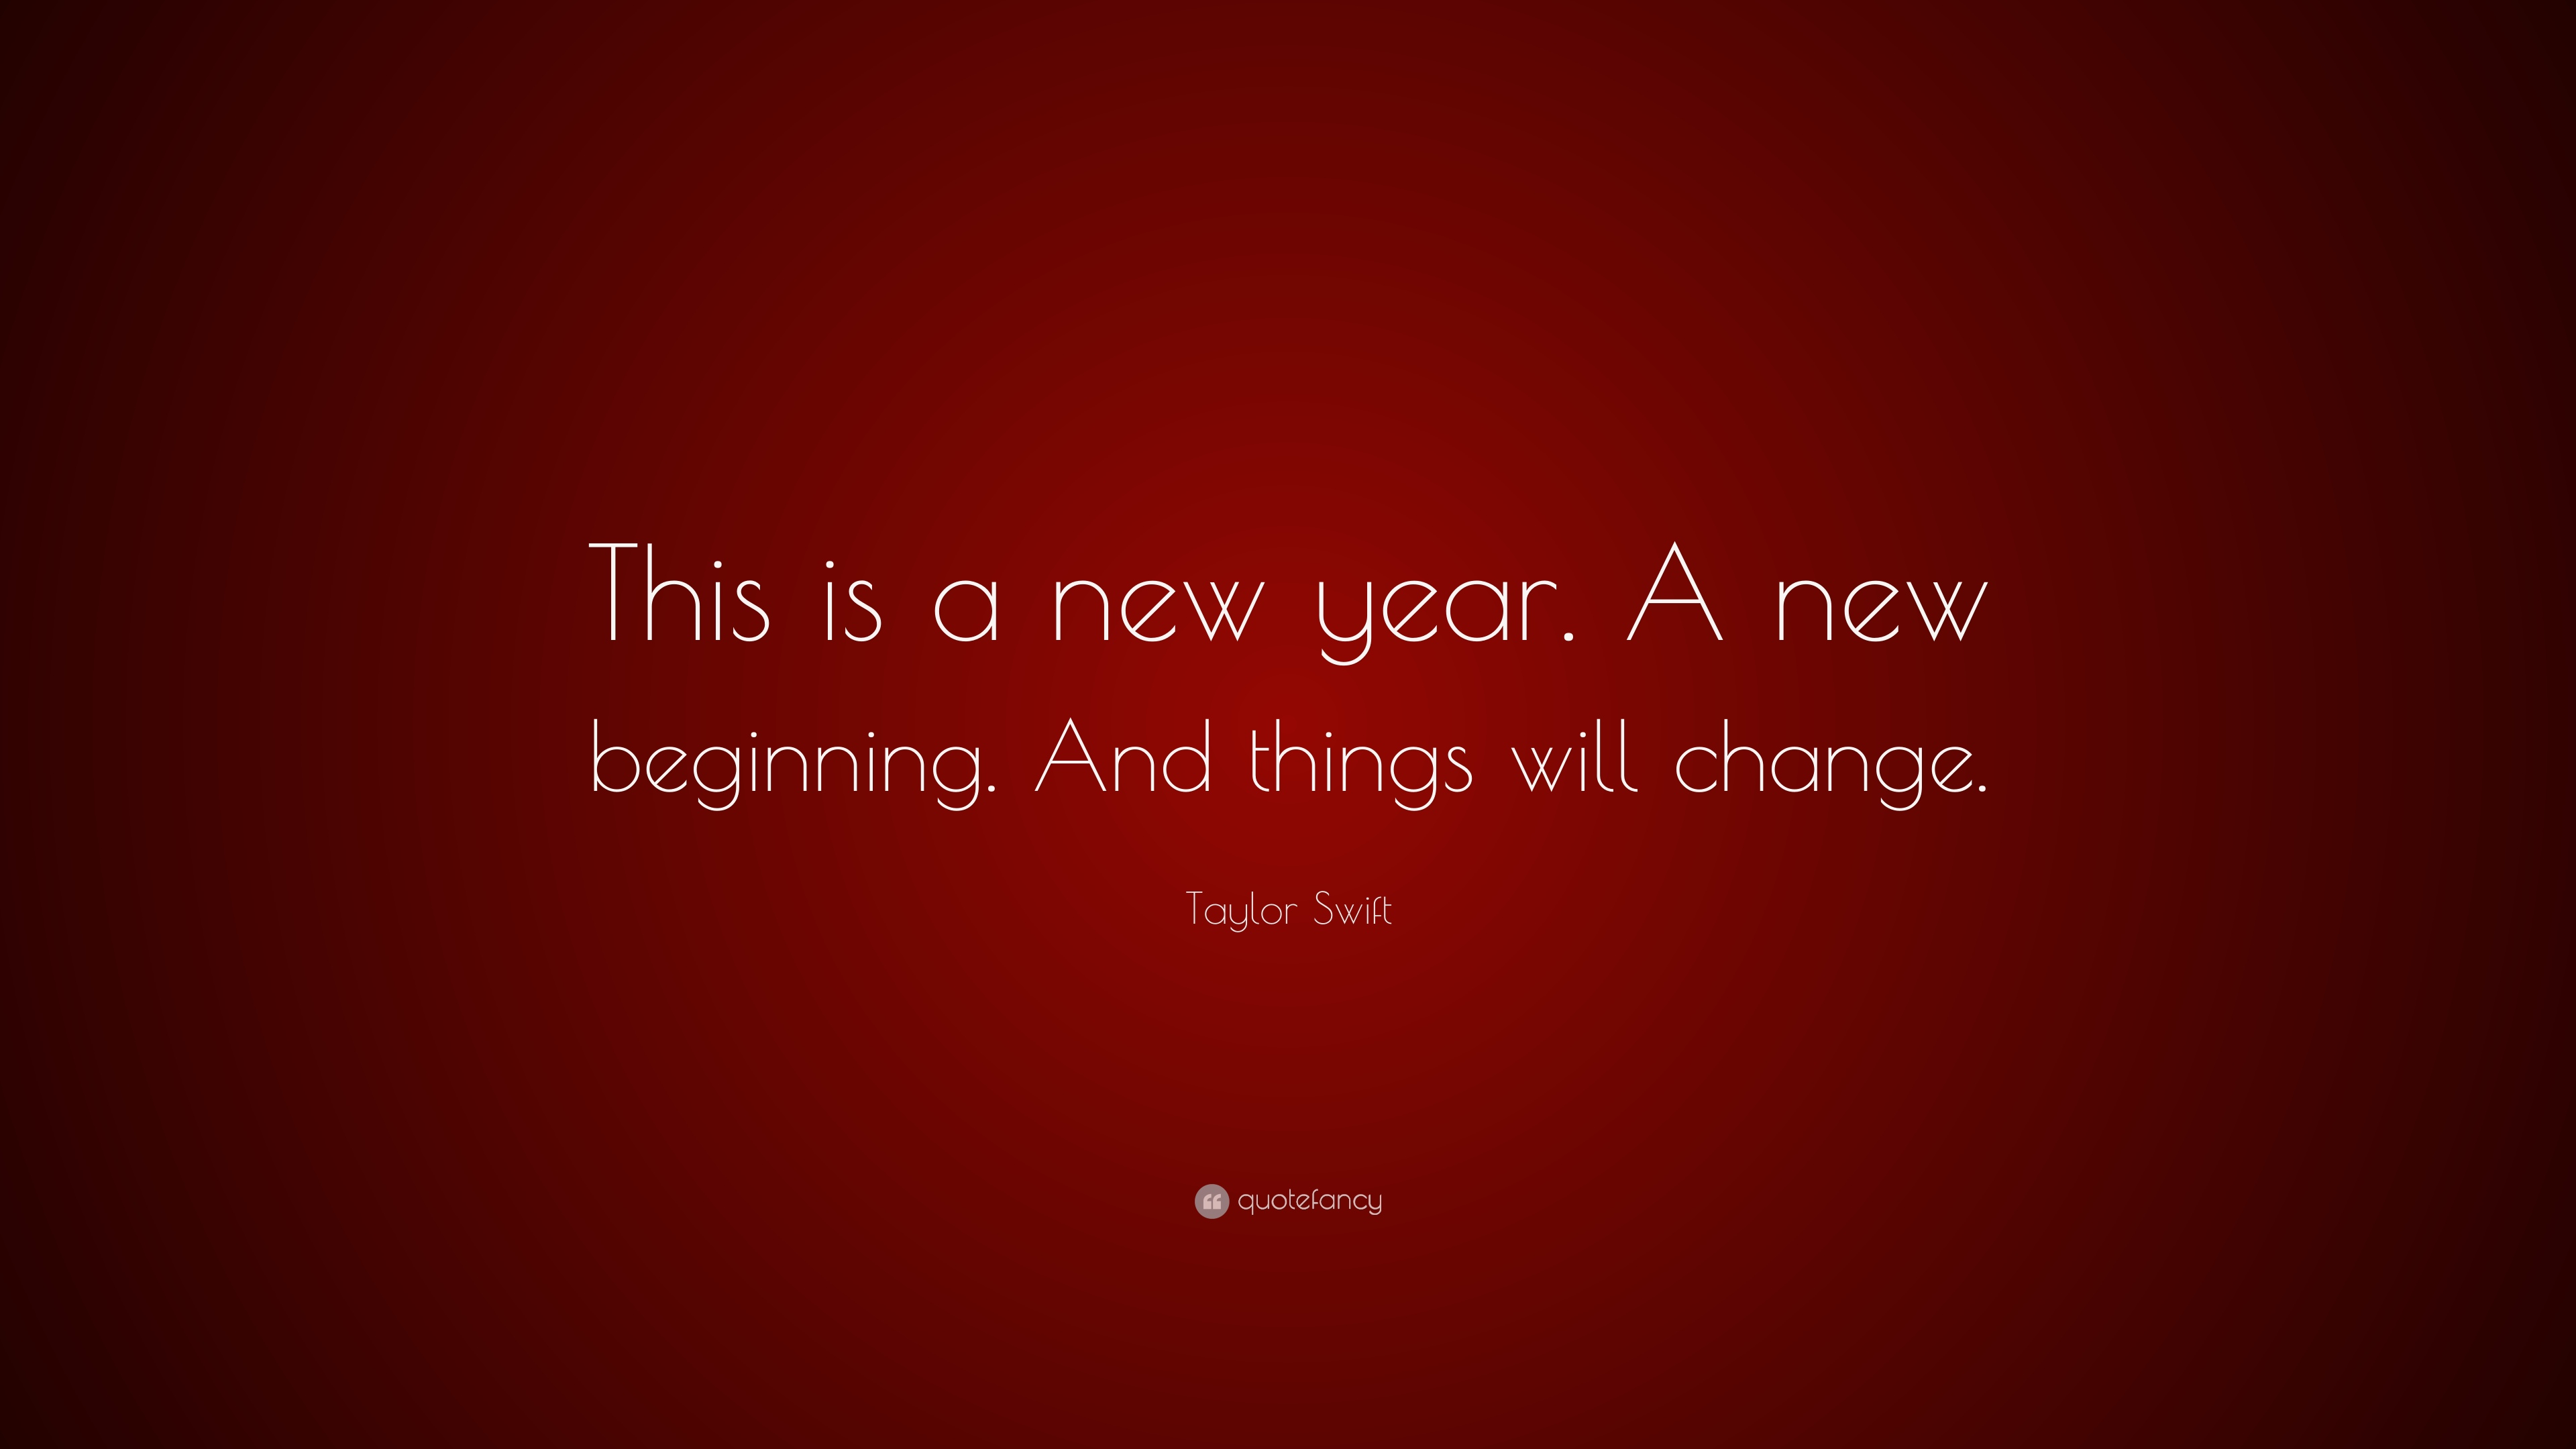 Taylor Swift Quote: U201cThis Is A New Year. A New Beginning. And